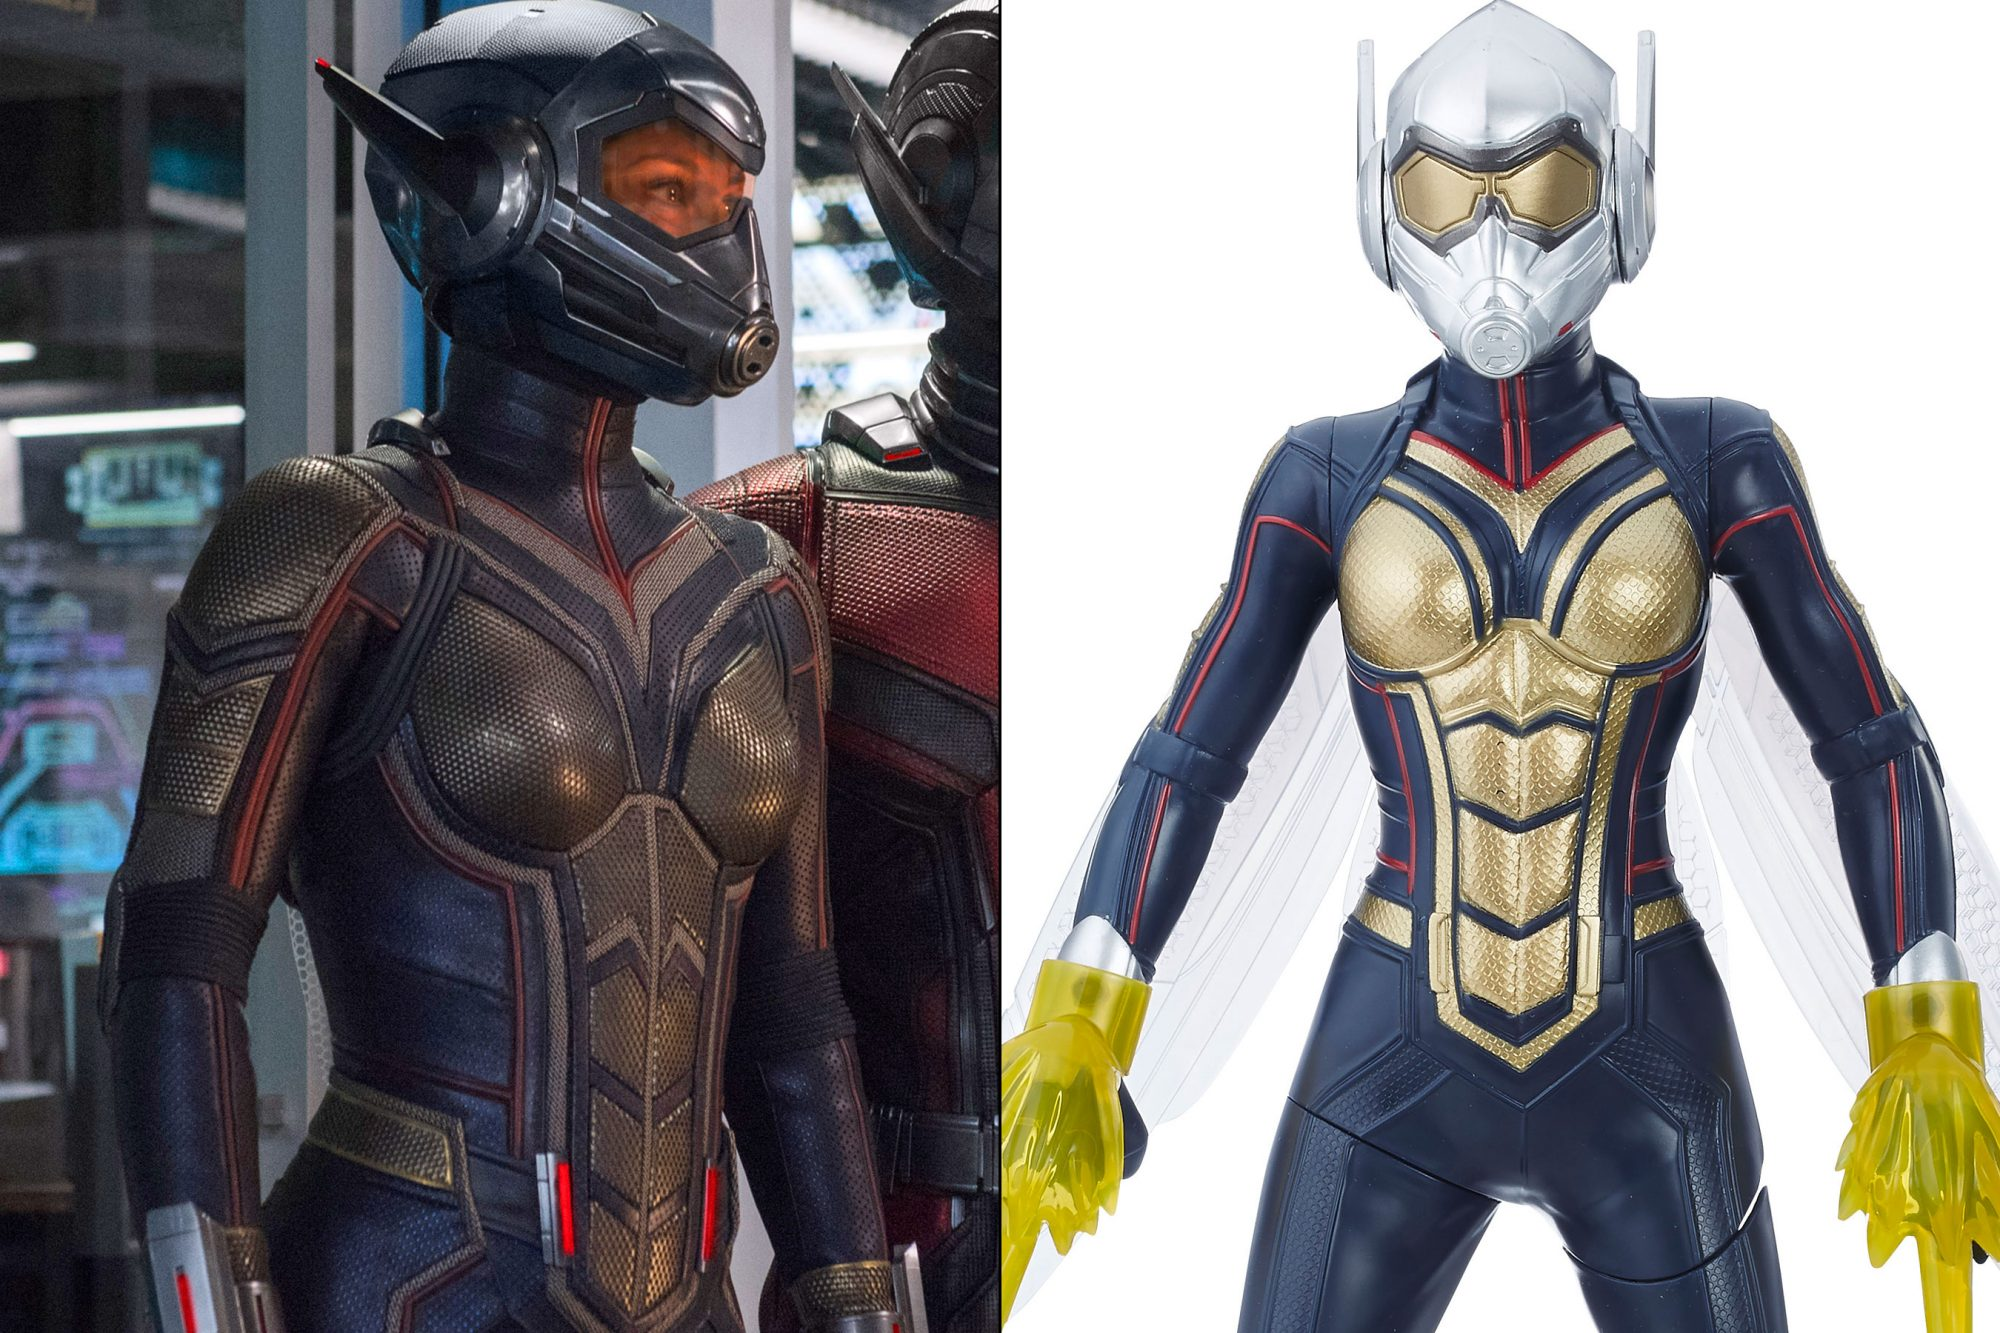 Hasbro's Ant-Man and the Wasp toy line